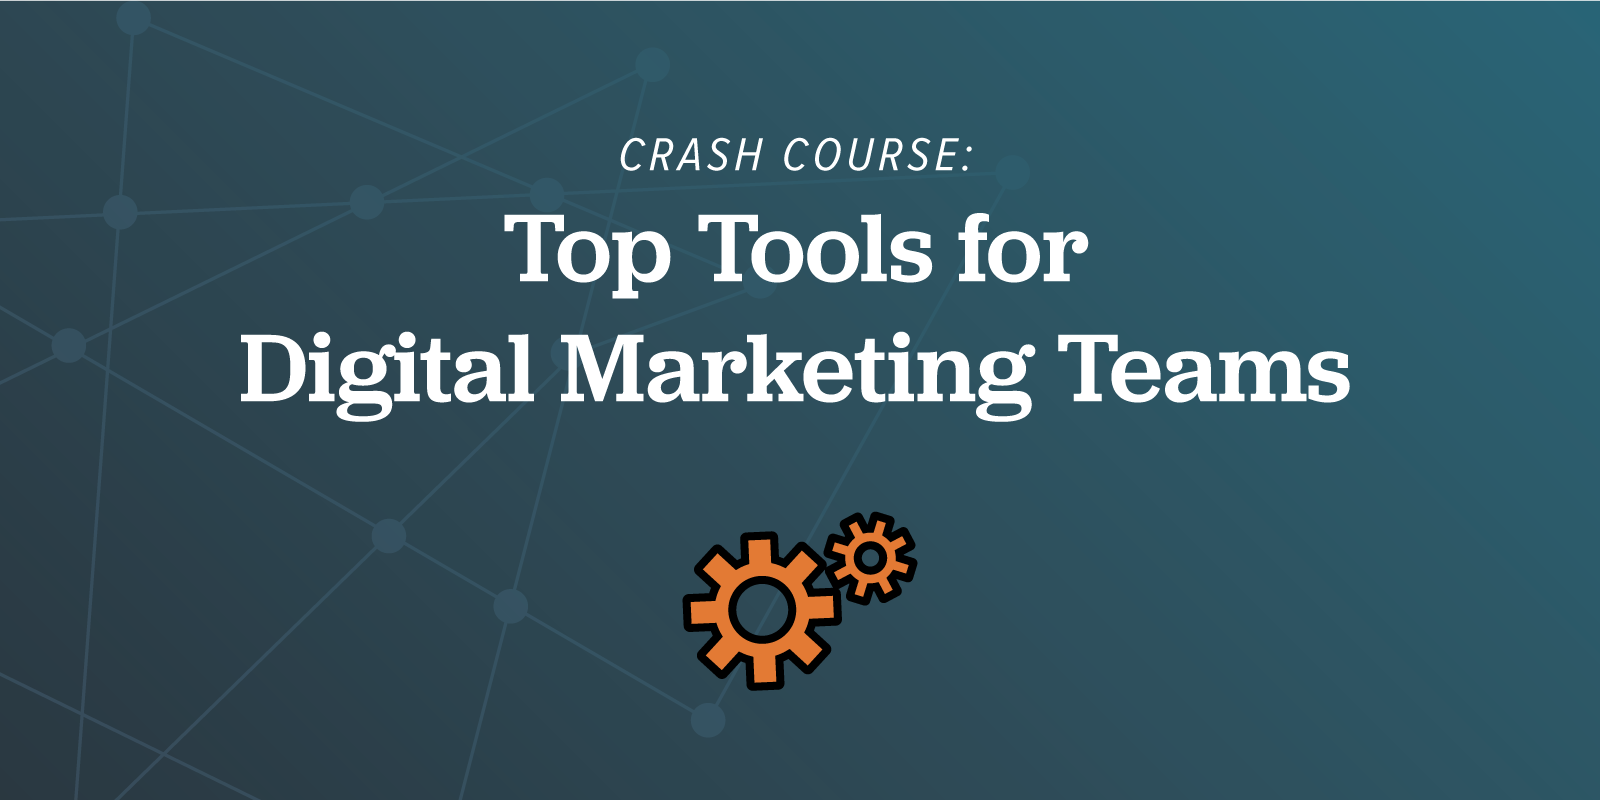 ArcStone Crash Course: Top Tools for Digital Marketing Teams